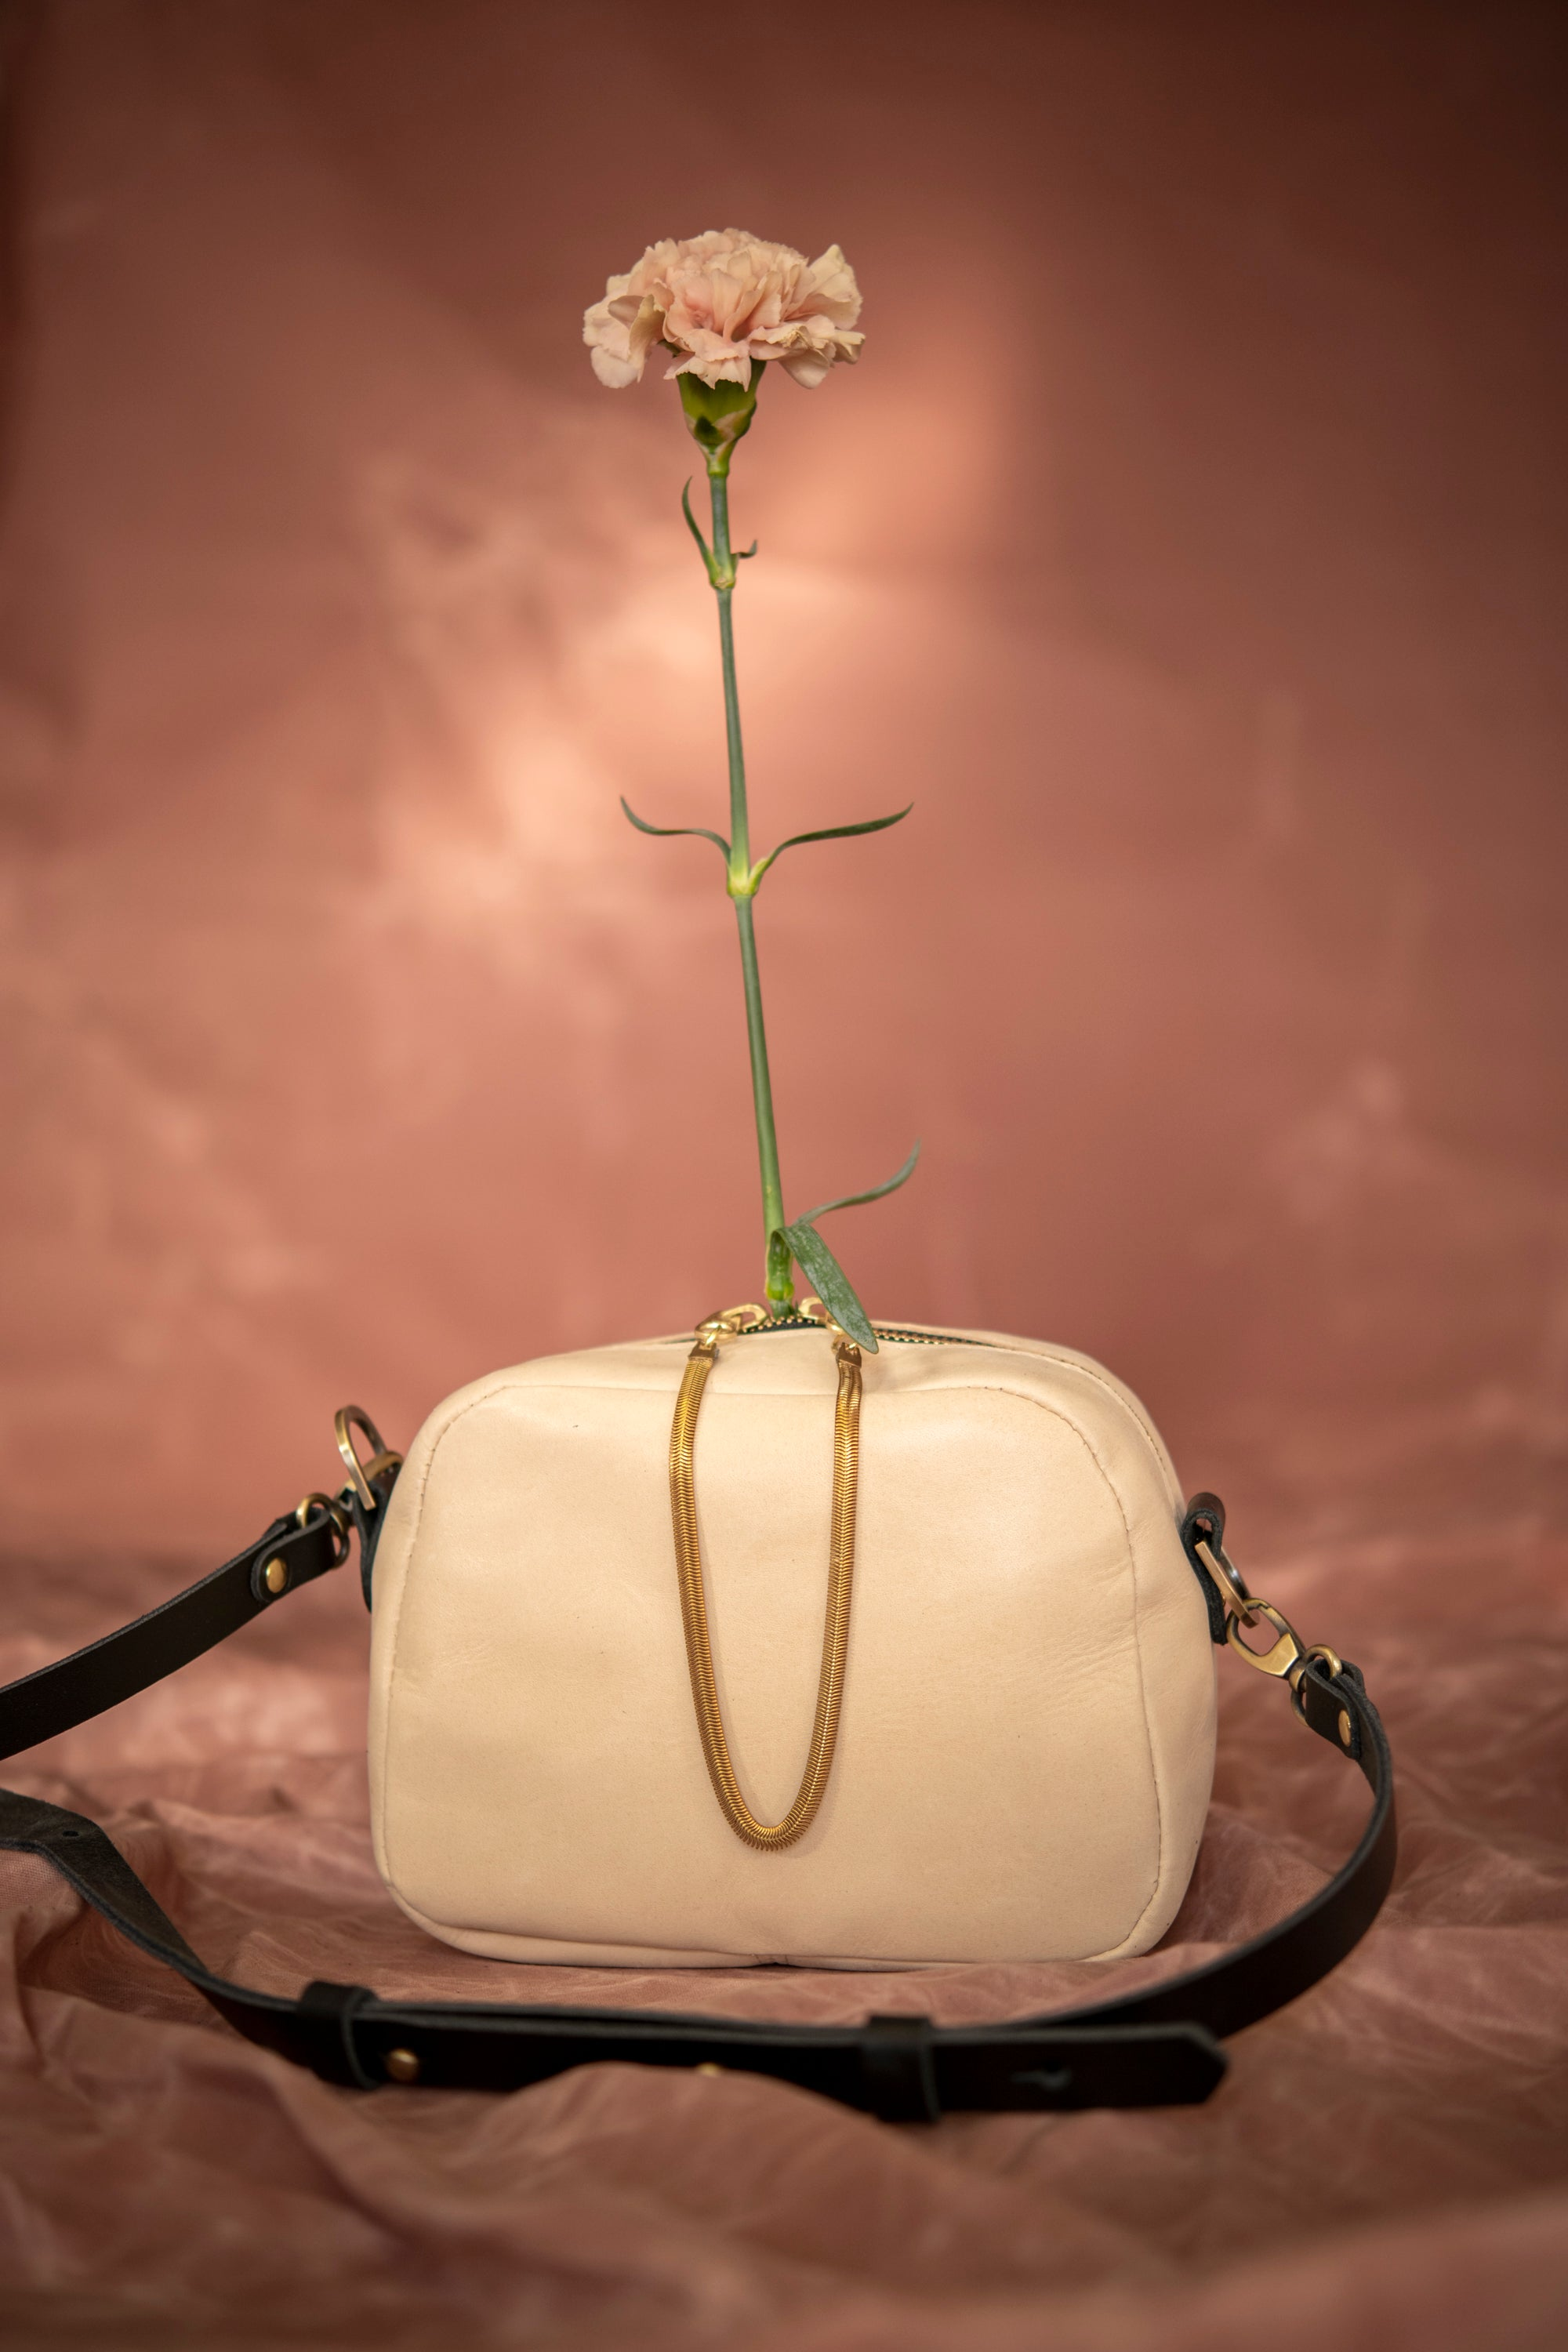 Veinage Cartier ivory leather crossbody bag